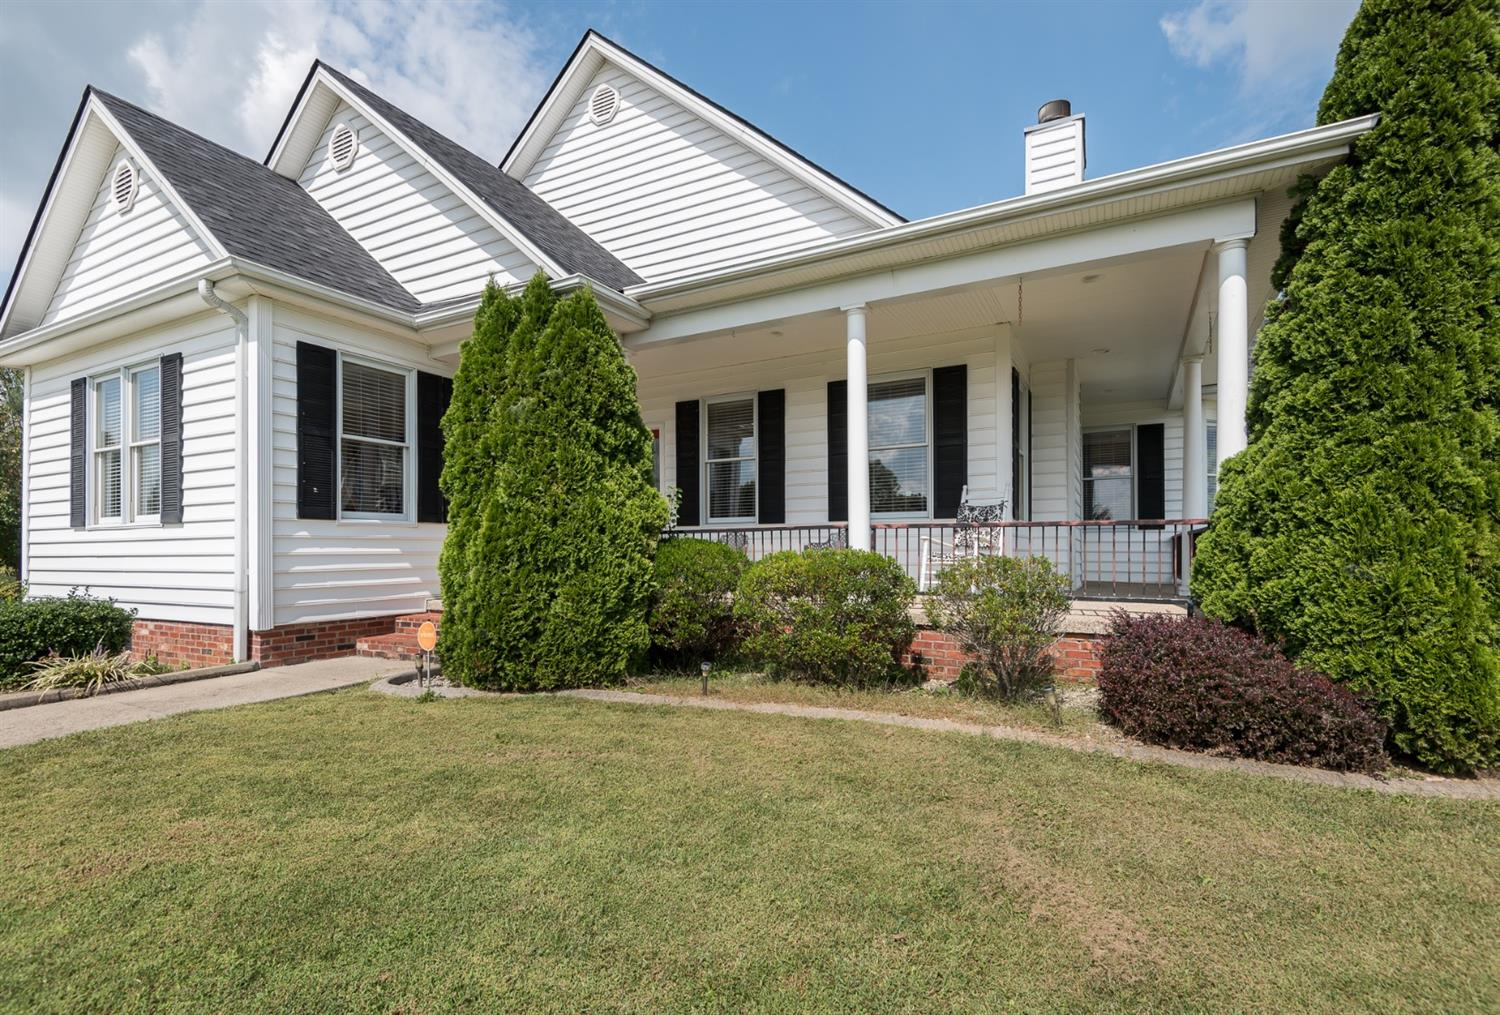 Homes For Sale in 301 Briarcliff, Danville, KY 40422 Subdivision